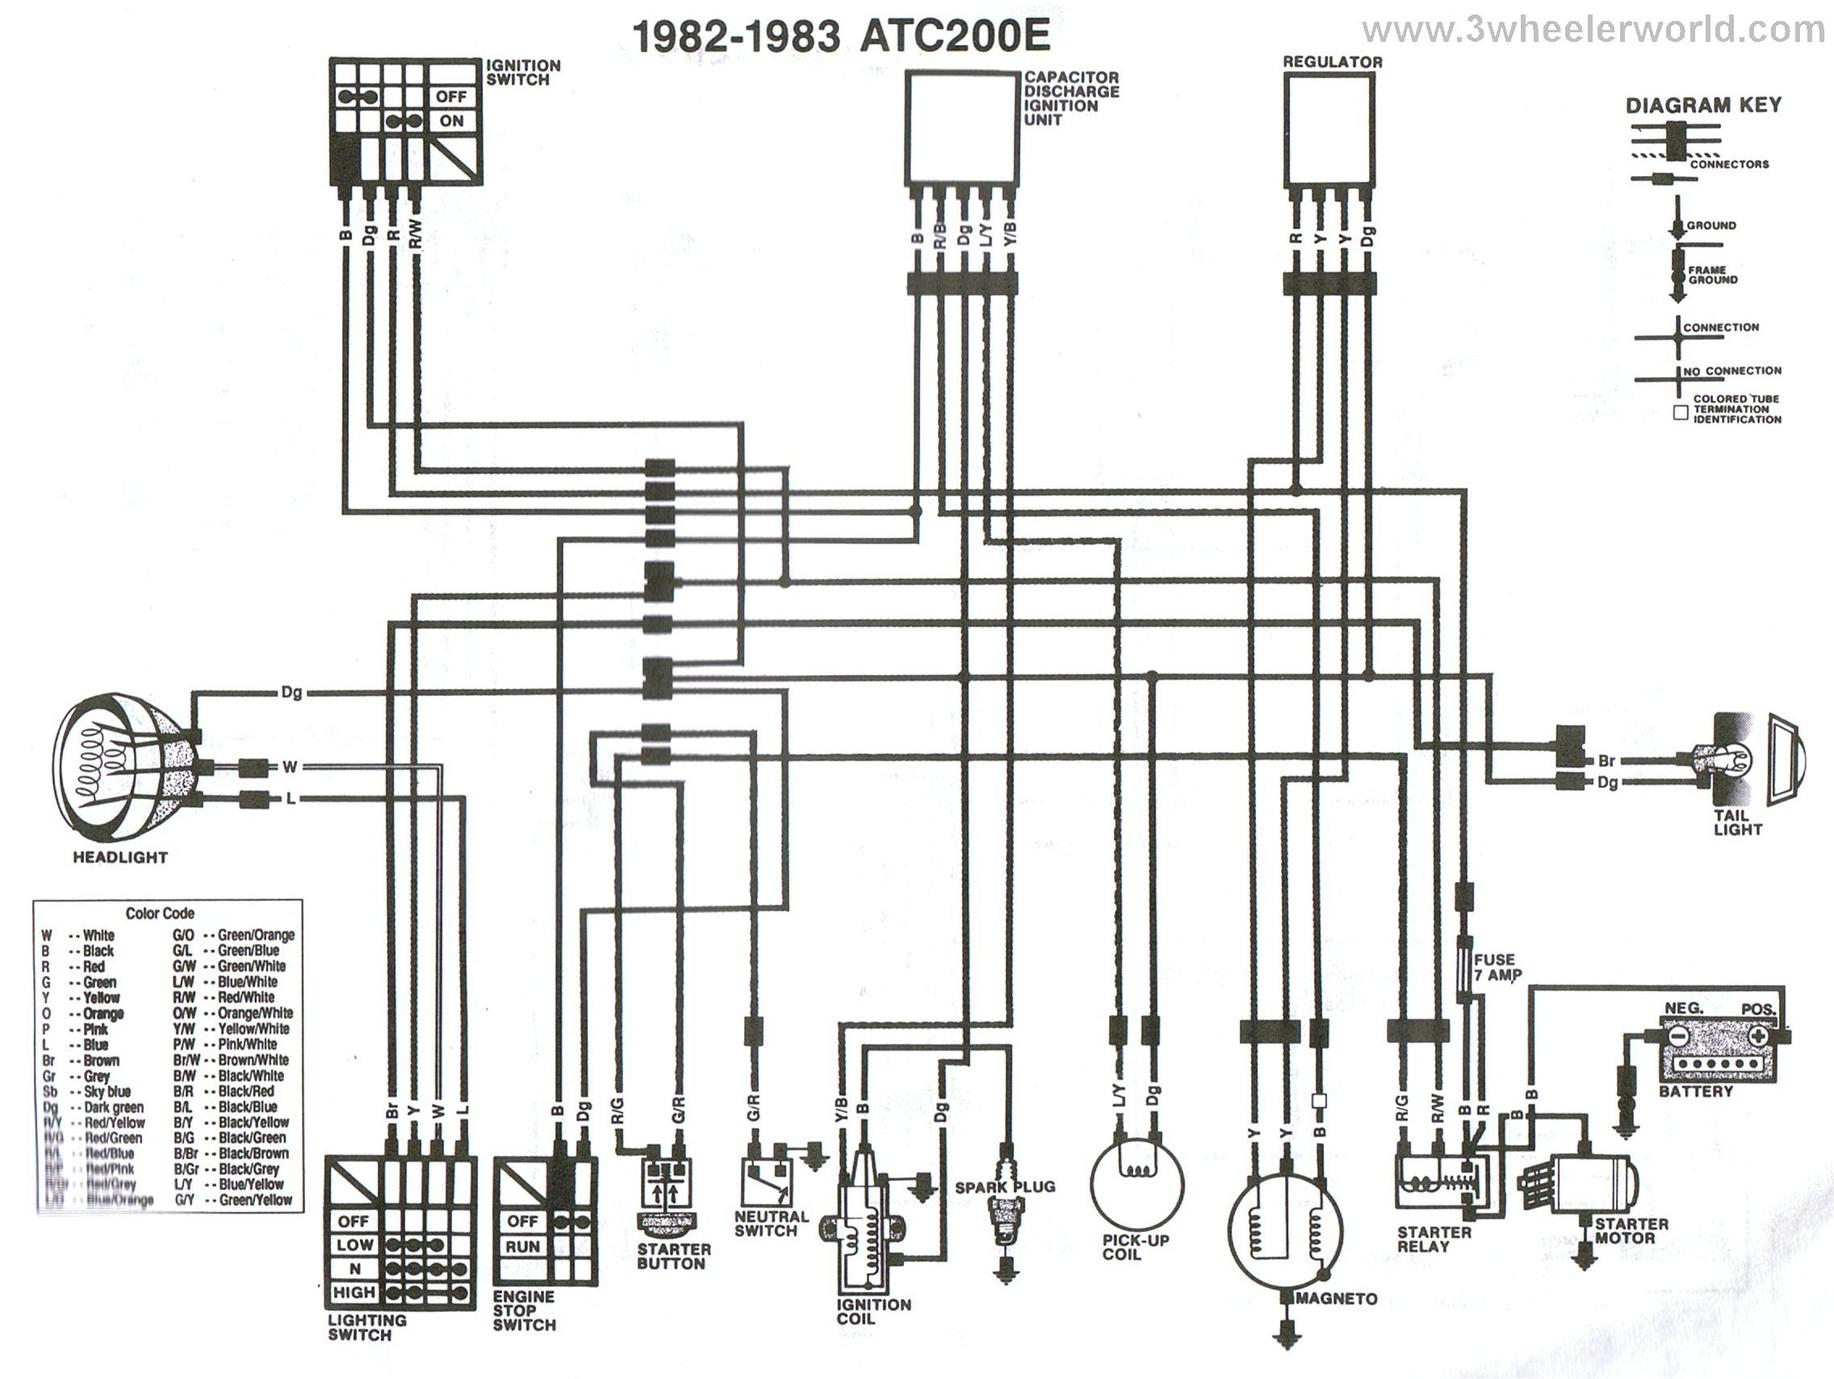 1985 honda fourtrax 250 wiring diagram 1985 image 87 honda fourtrax 250 wiring schematic 87 discover your wiring on 1985 honda fourtrax 250 wiring